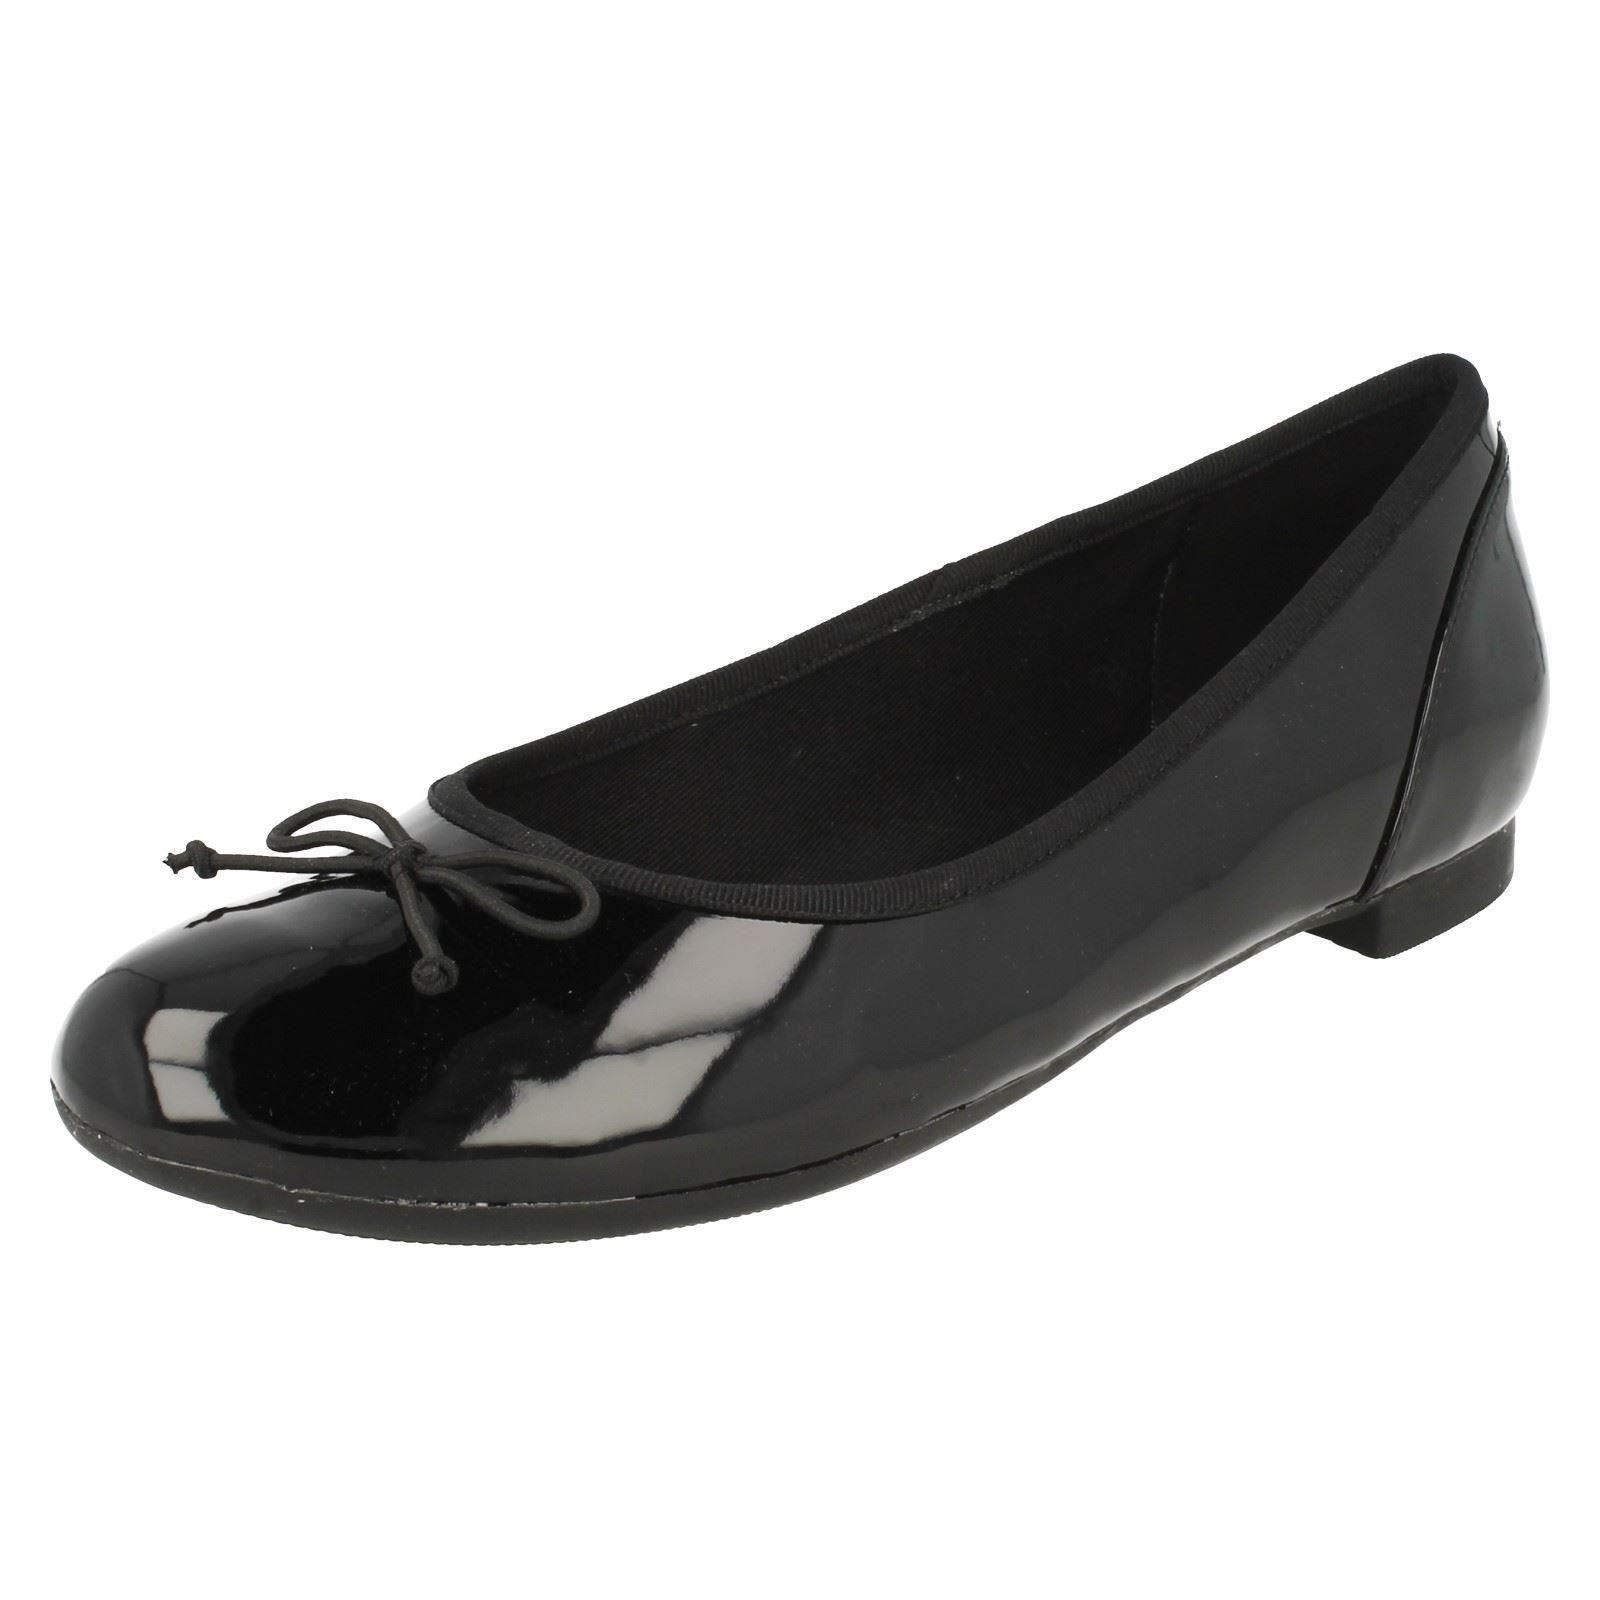 aaa7e0c7b561 Ladies Clarks Ballet Flats The Style Couture Bloom 3 UK Black Patent E.  About this product. Picture 1 of 11  Picture 2 of 11 ...